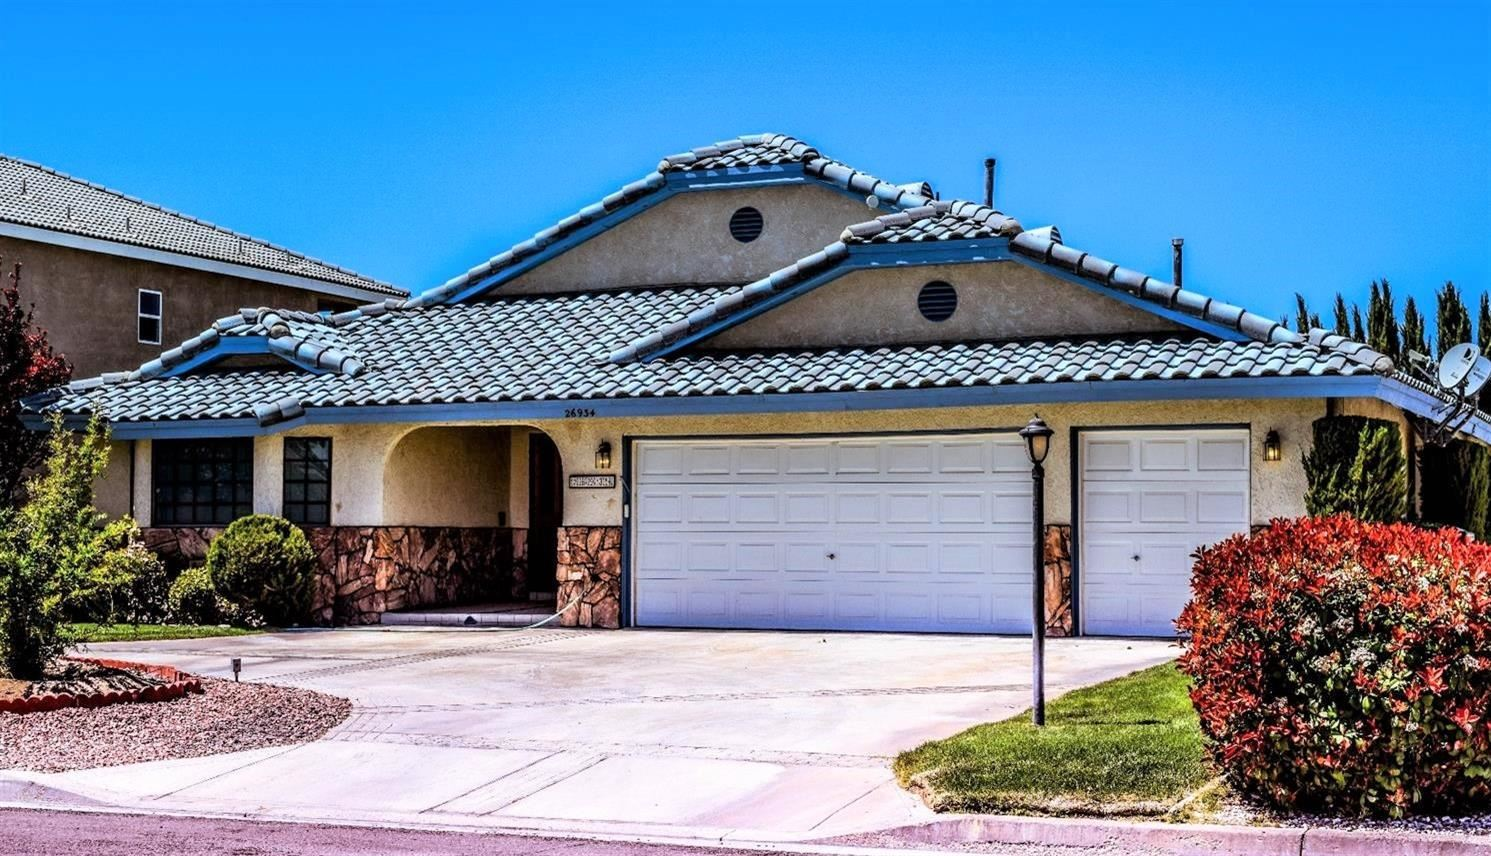 26934 Silver Lakes Parkway, Helendale, CA 92342 - #: 535249